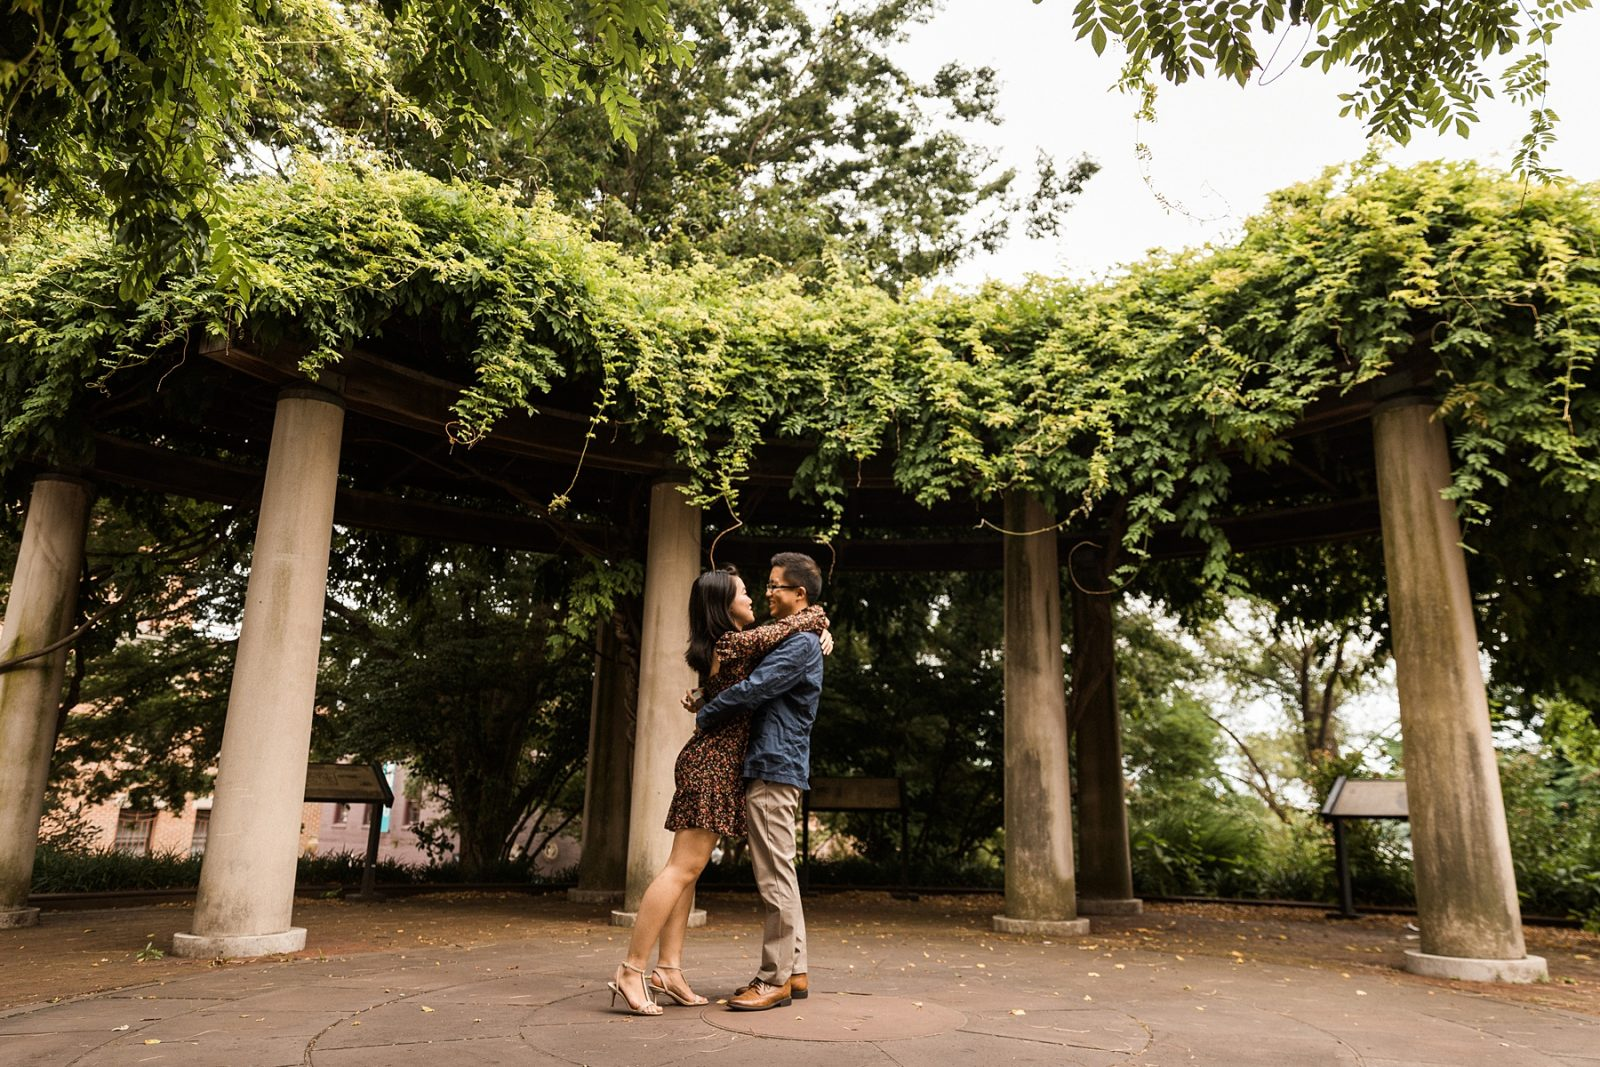 young asian couple gets engaged in a romantic garden setting with vine covered columns